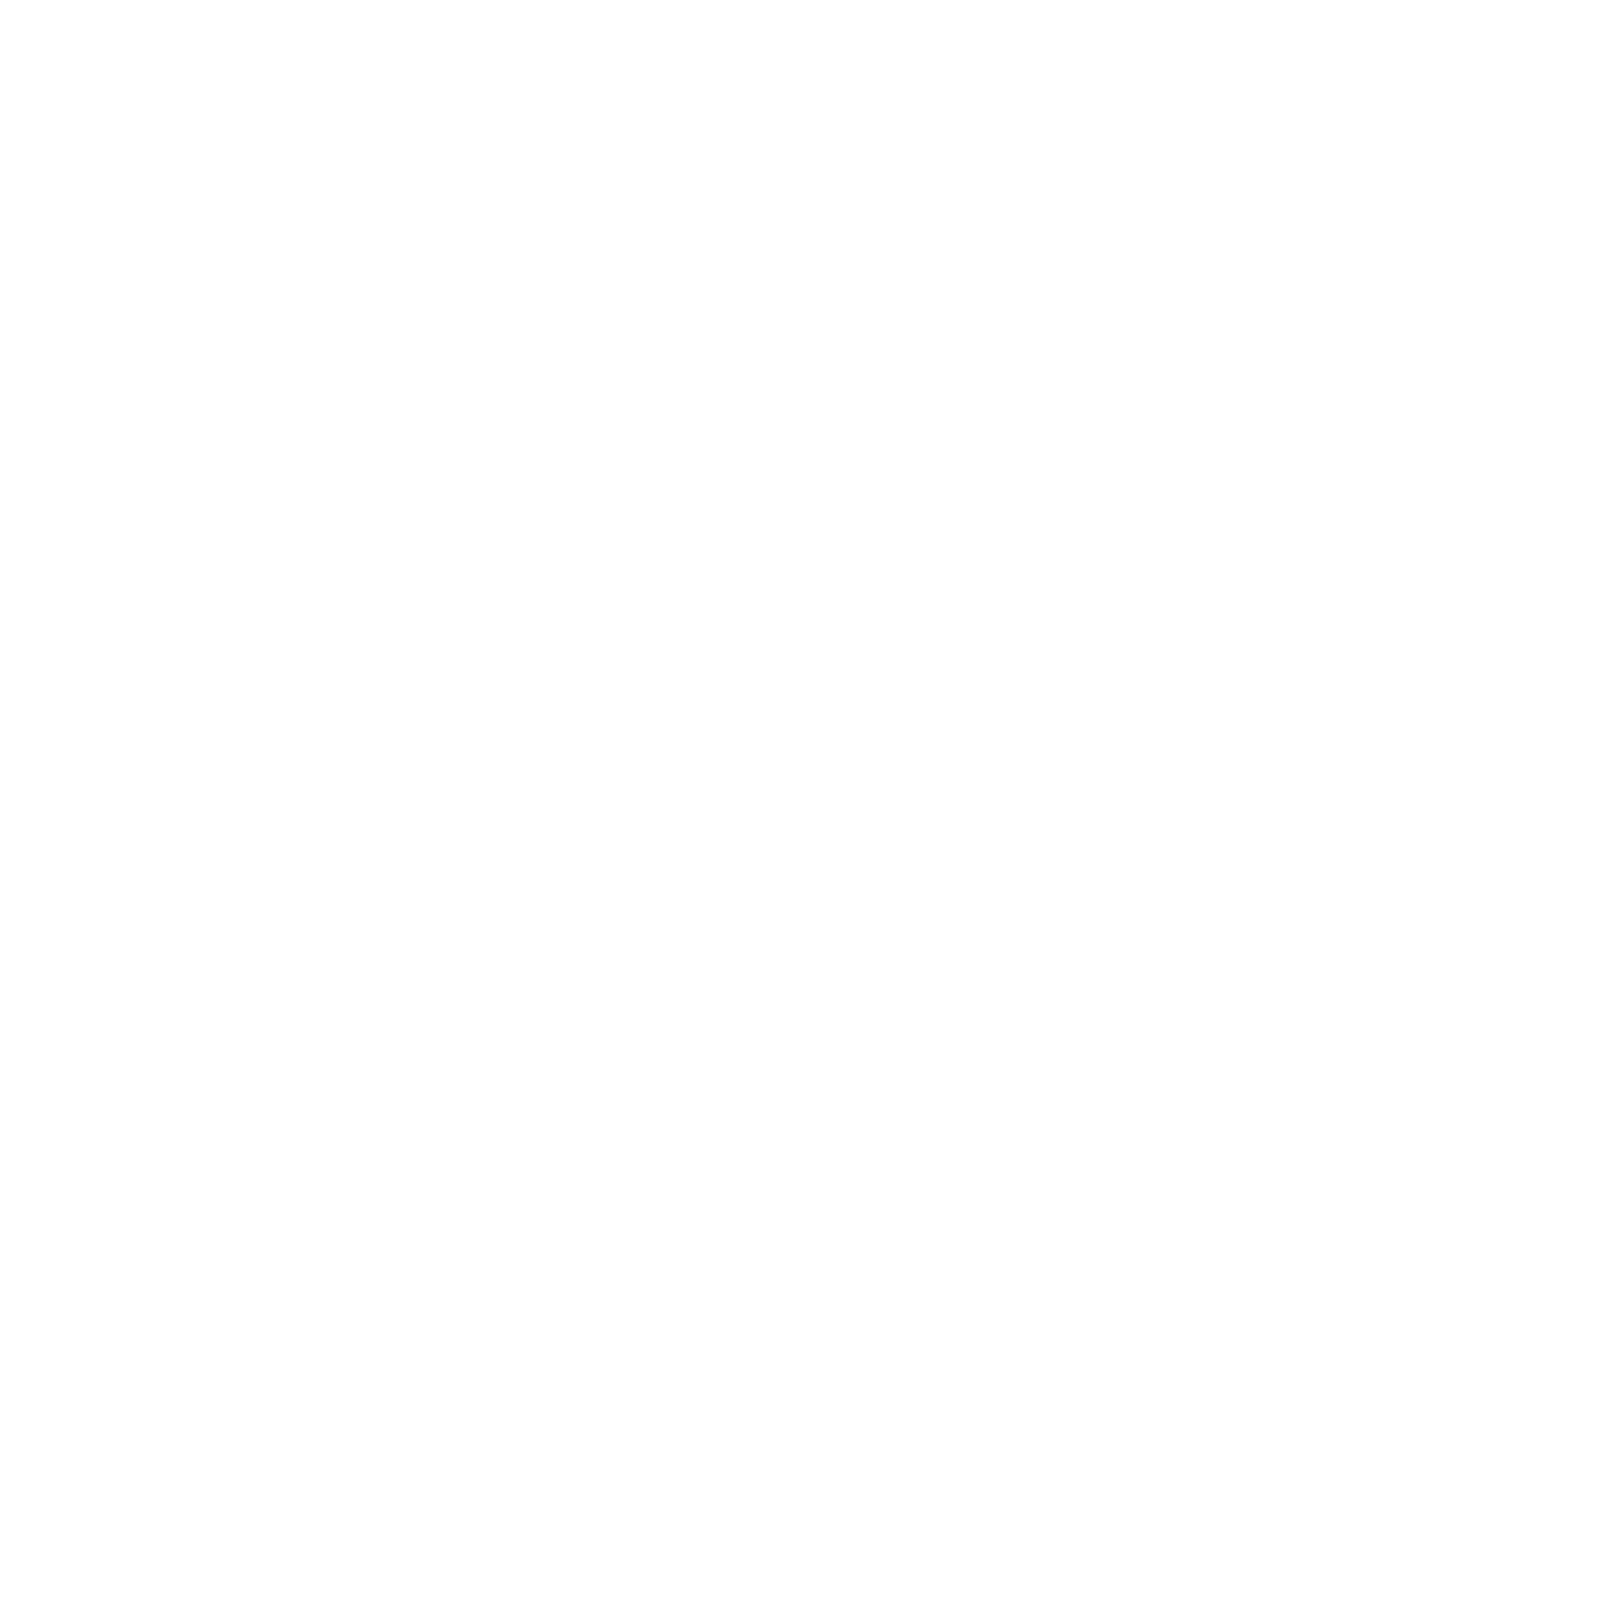 Heathrow Client Cover Logo